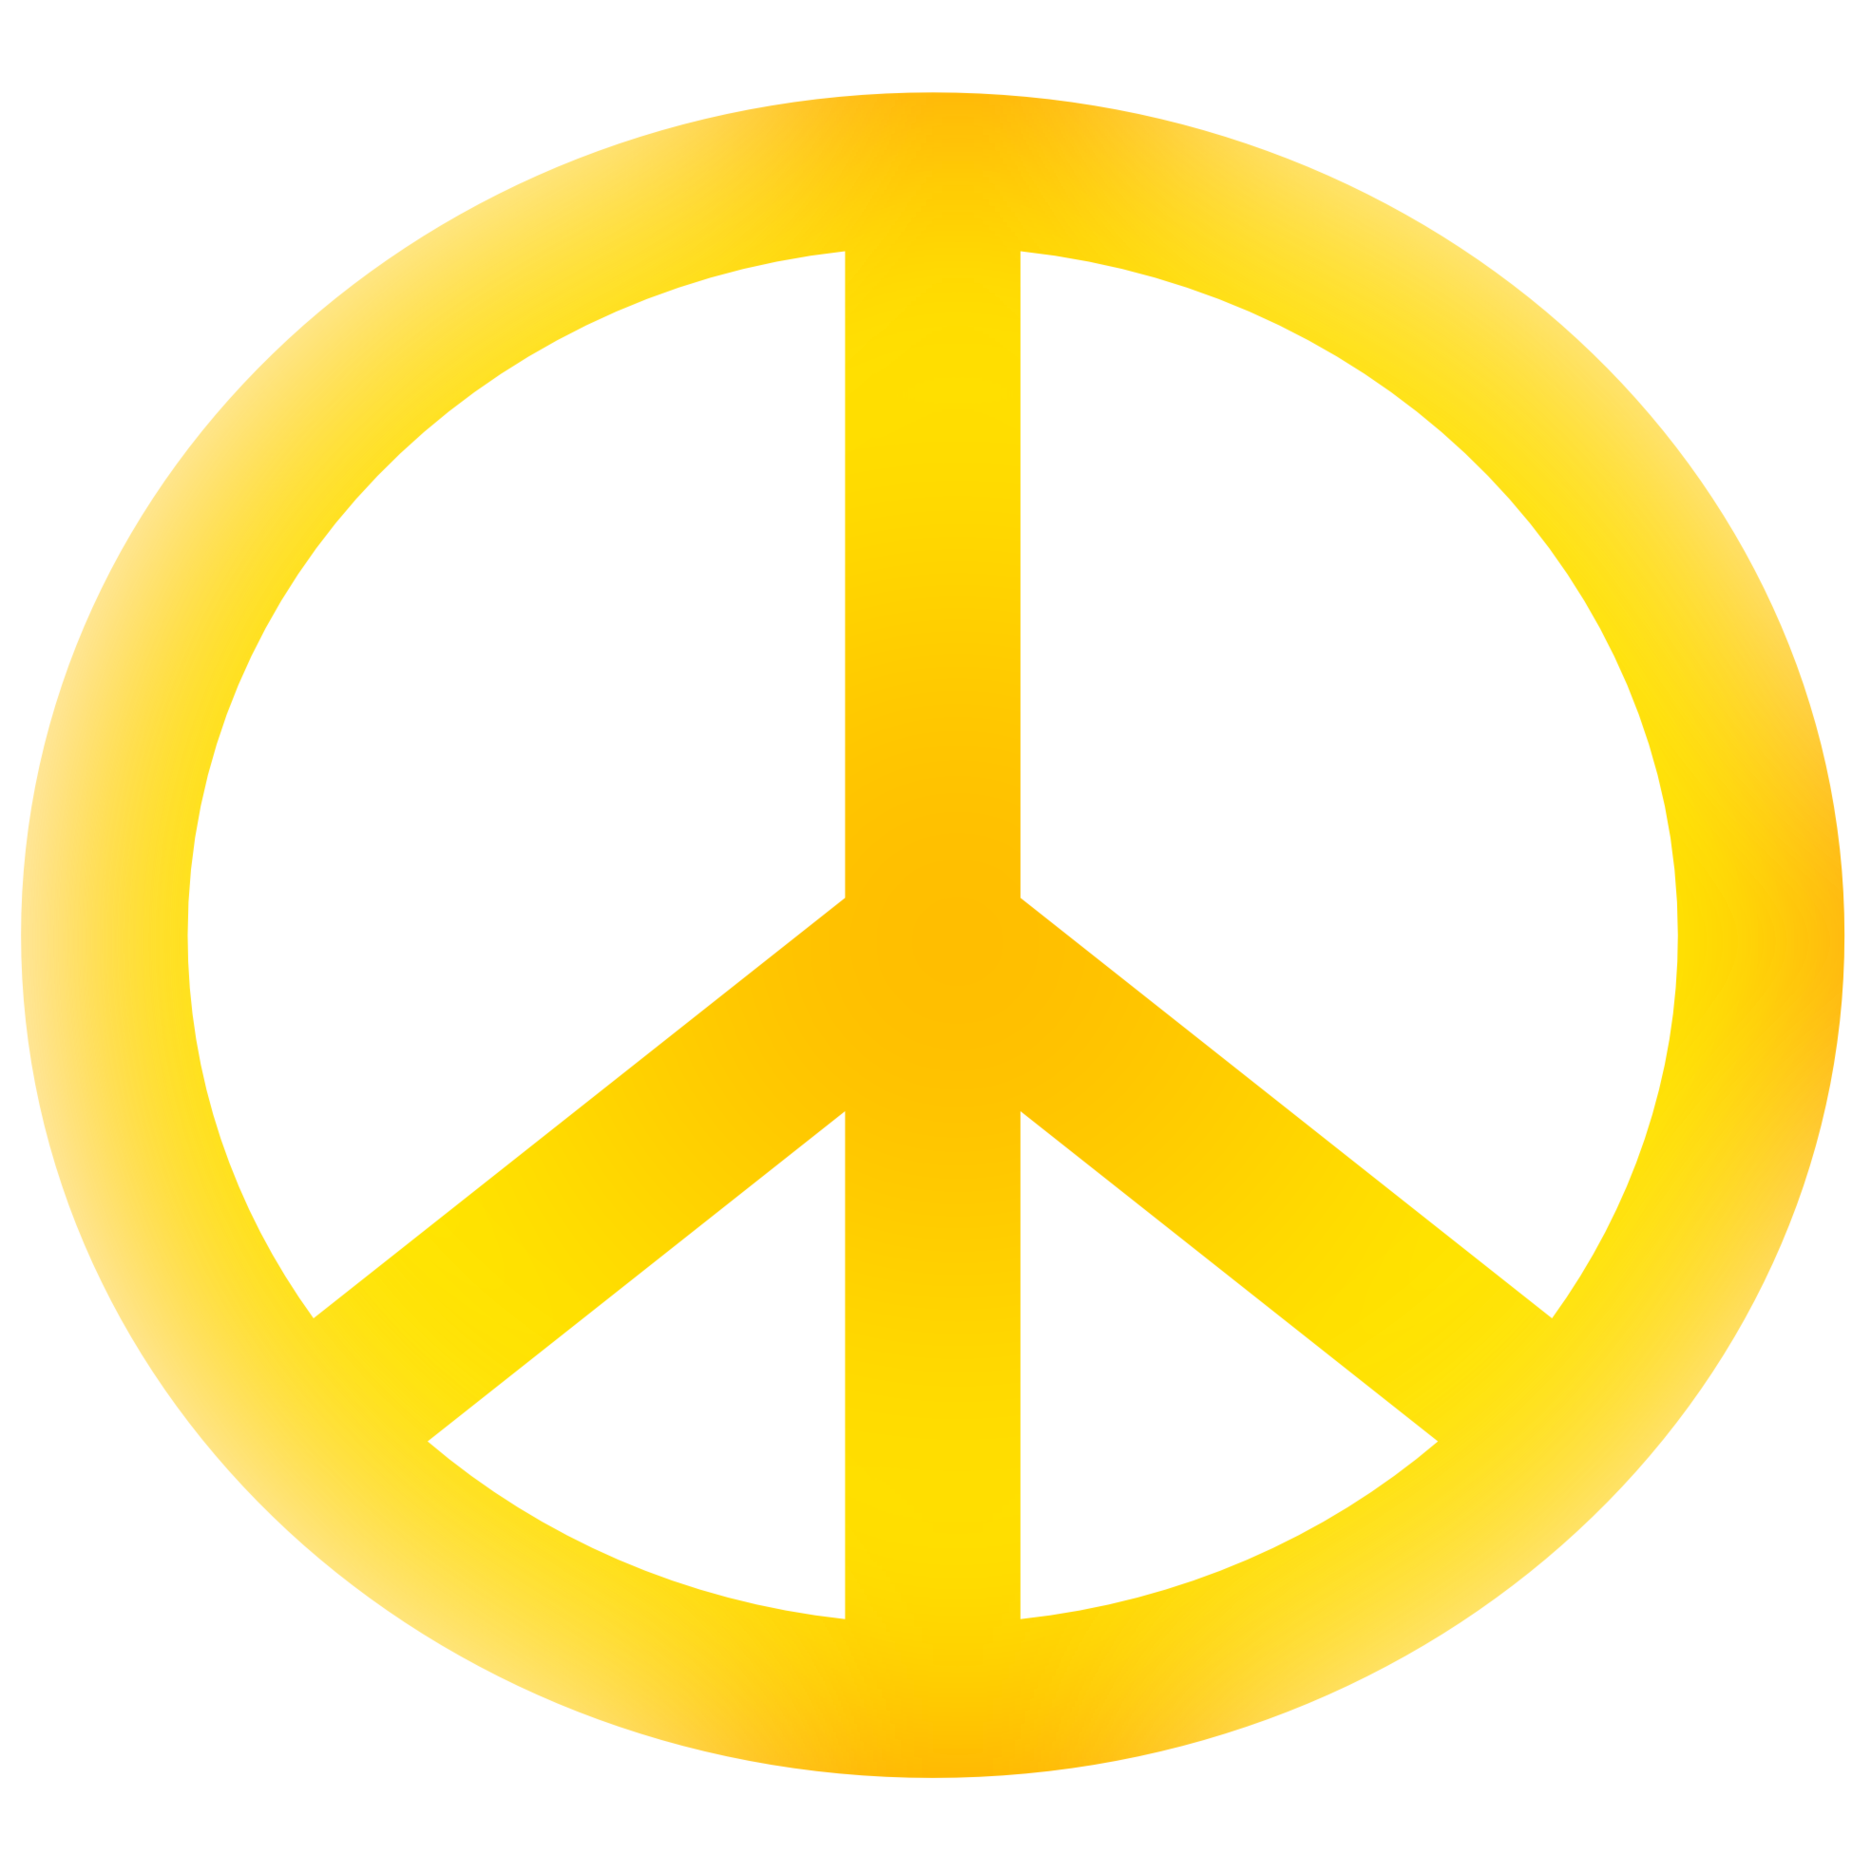 Peace clipart yellow Border clipart sign resource art